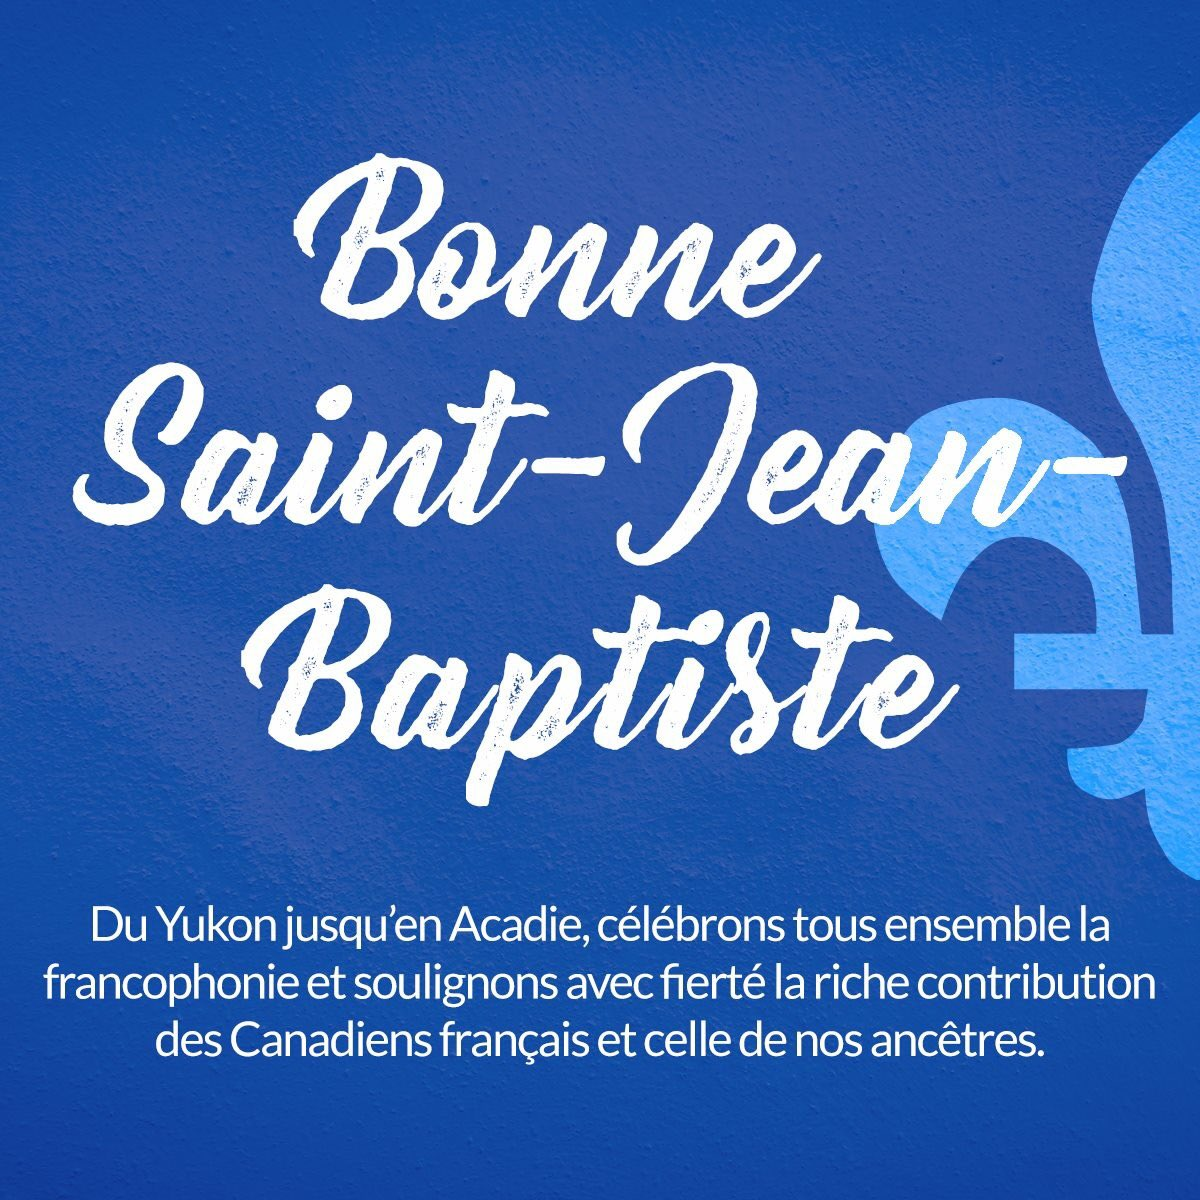 Bonne #SaintJeanBaptiste! ⚜️⚜️ Happy Saint-Jean-Baptiste Day! https://...